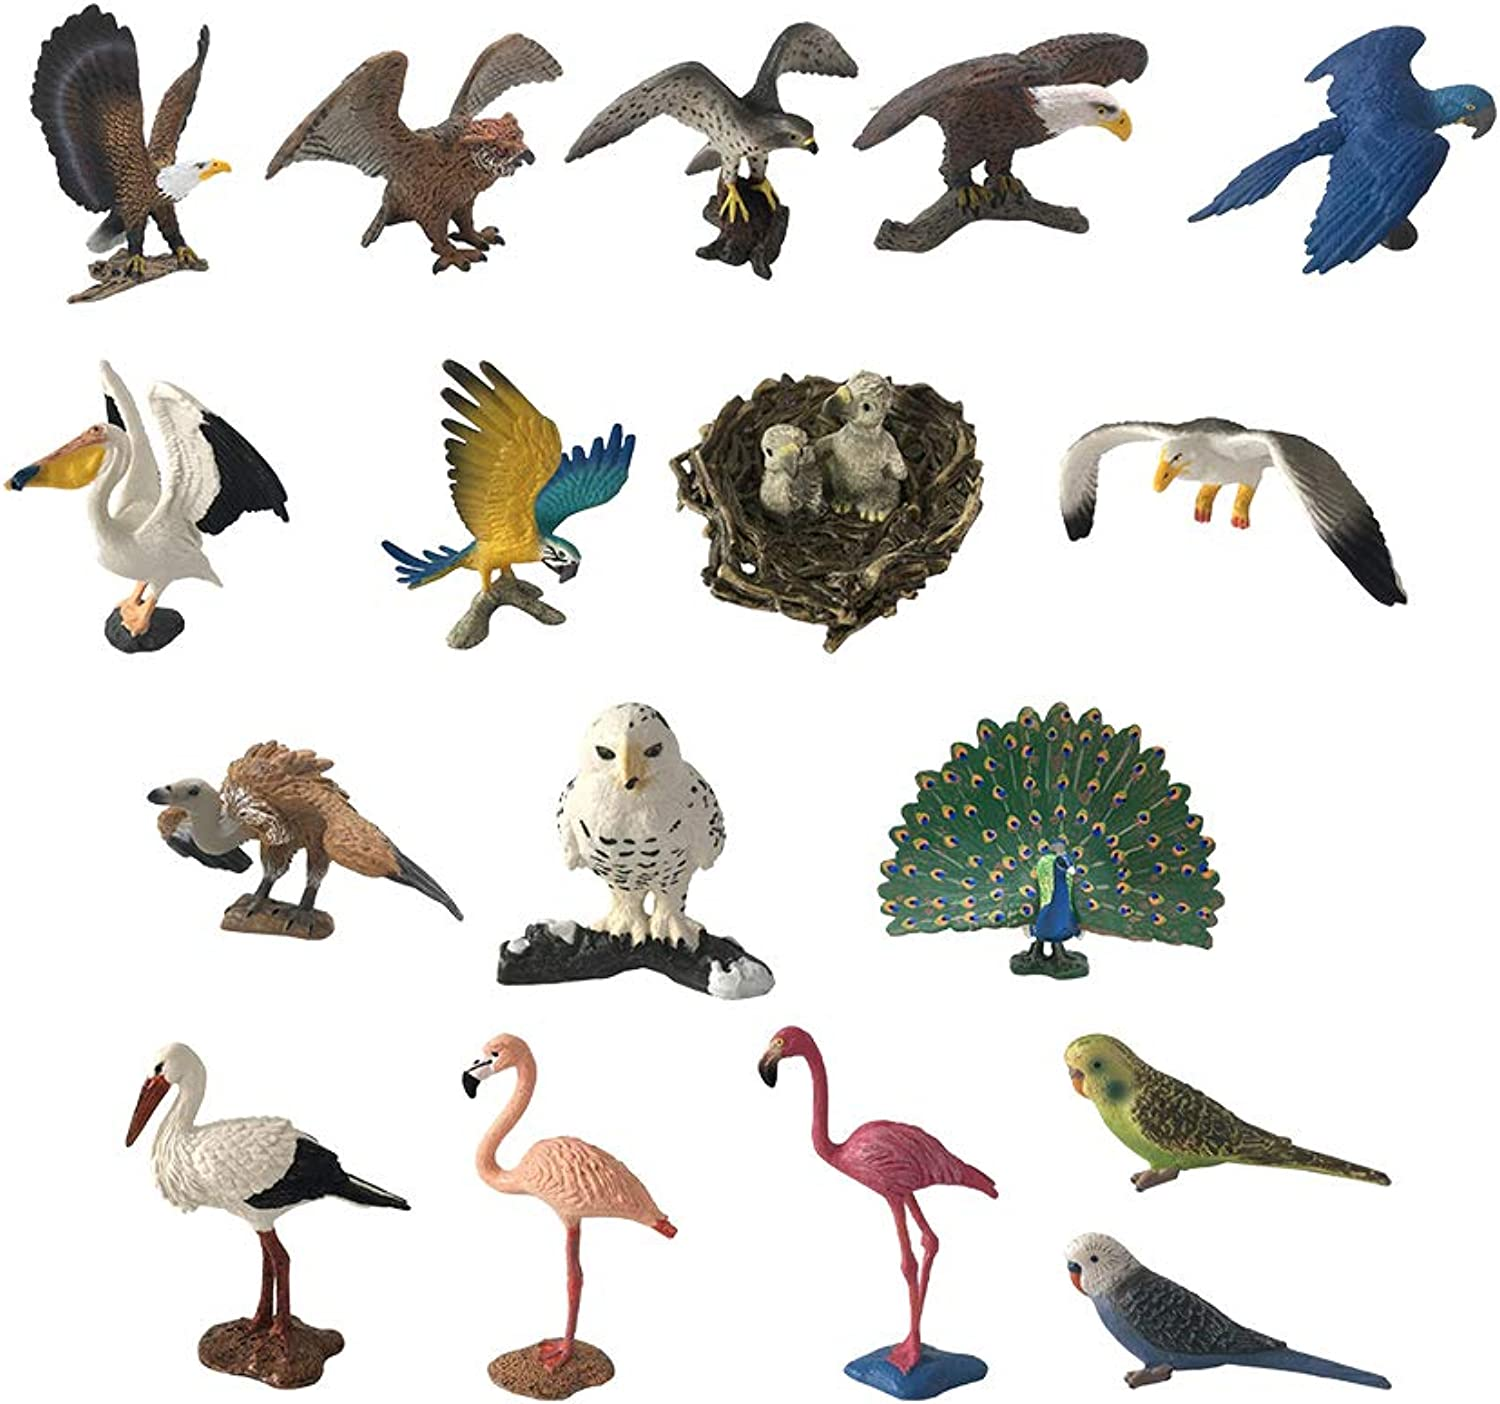 D DOLITY 18PCS Different Bird Toy Figurine Models, Including Macaw, Pelican, Crane, Seagull, Parred, Flamingo, Owl, Eagle, Vulture Bird, Peacock, and More